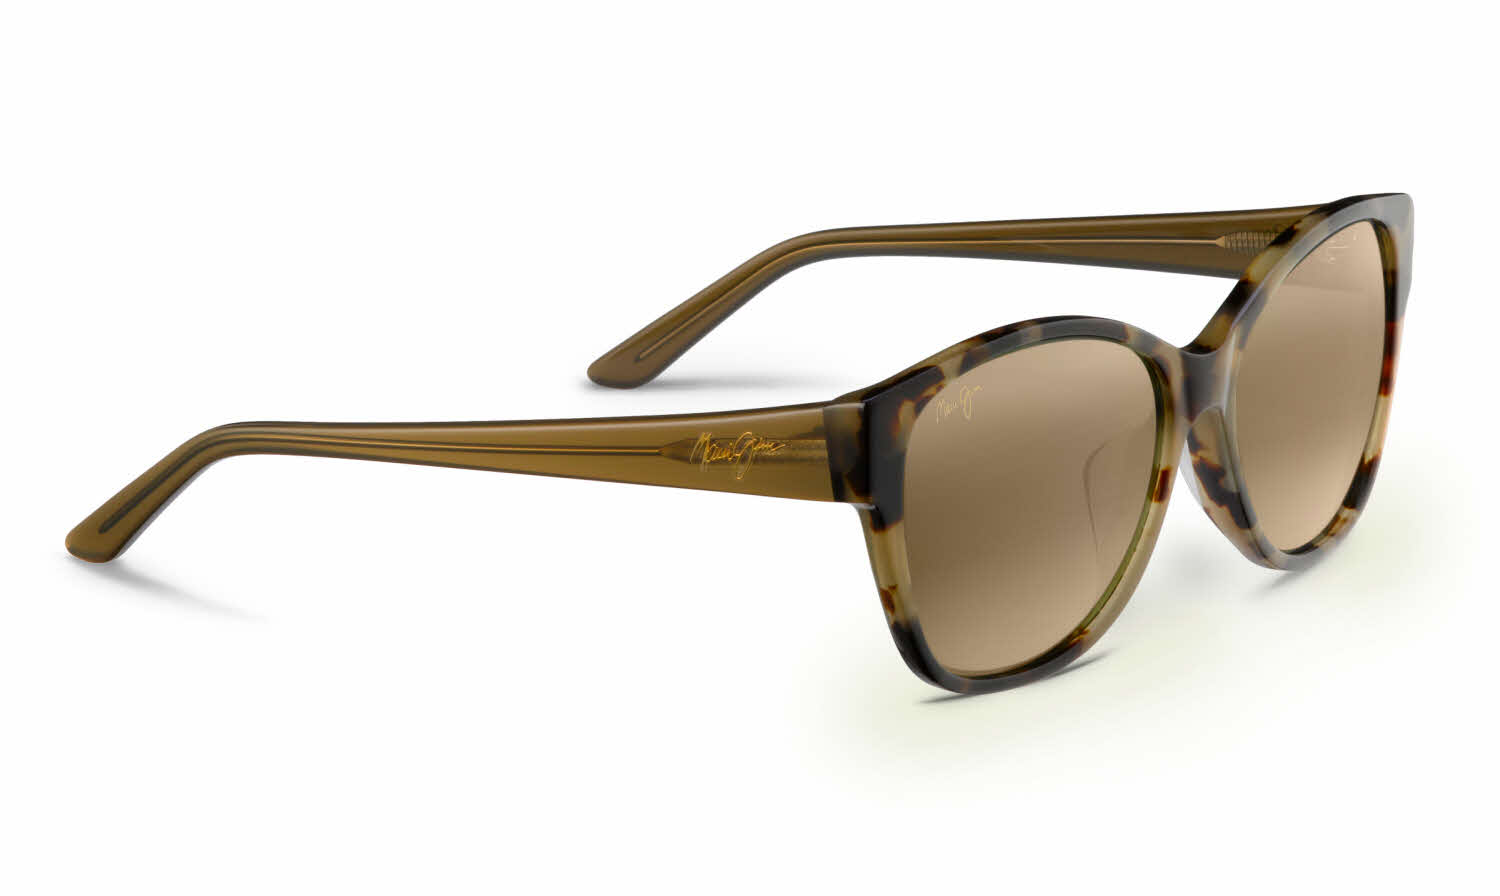 Maui Jim Summer Time-732 Prescription Sunglasses